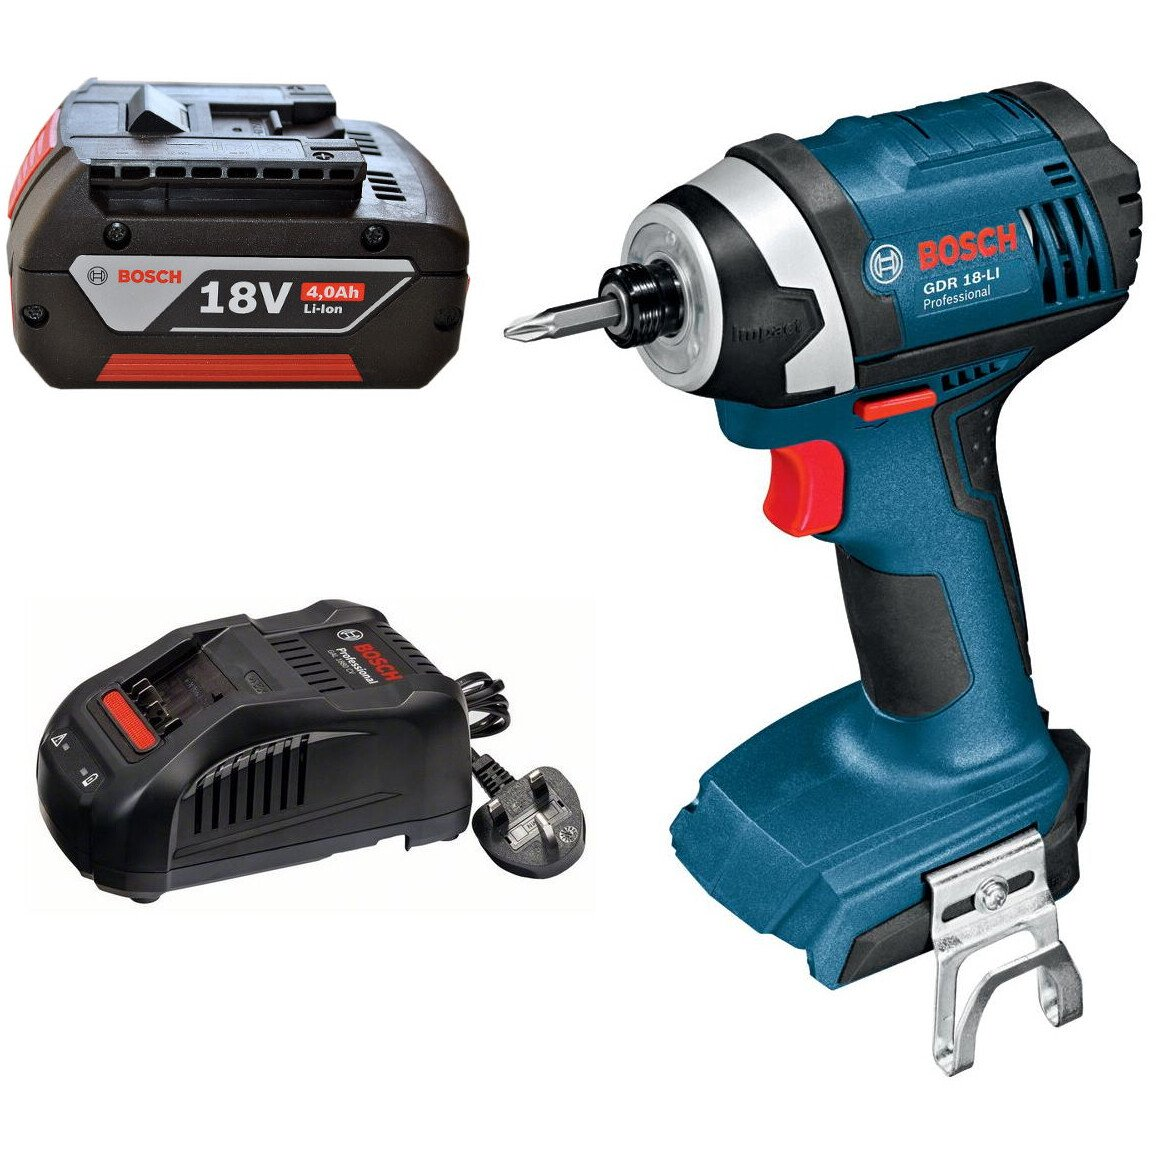 Bosch GDR 18 LIN 18V Light Series Impact Wrench with 4.0Ah Coolpack Battery and Quick Charger in Carton